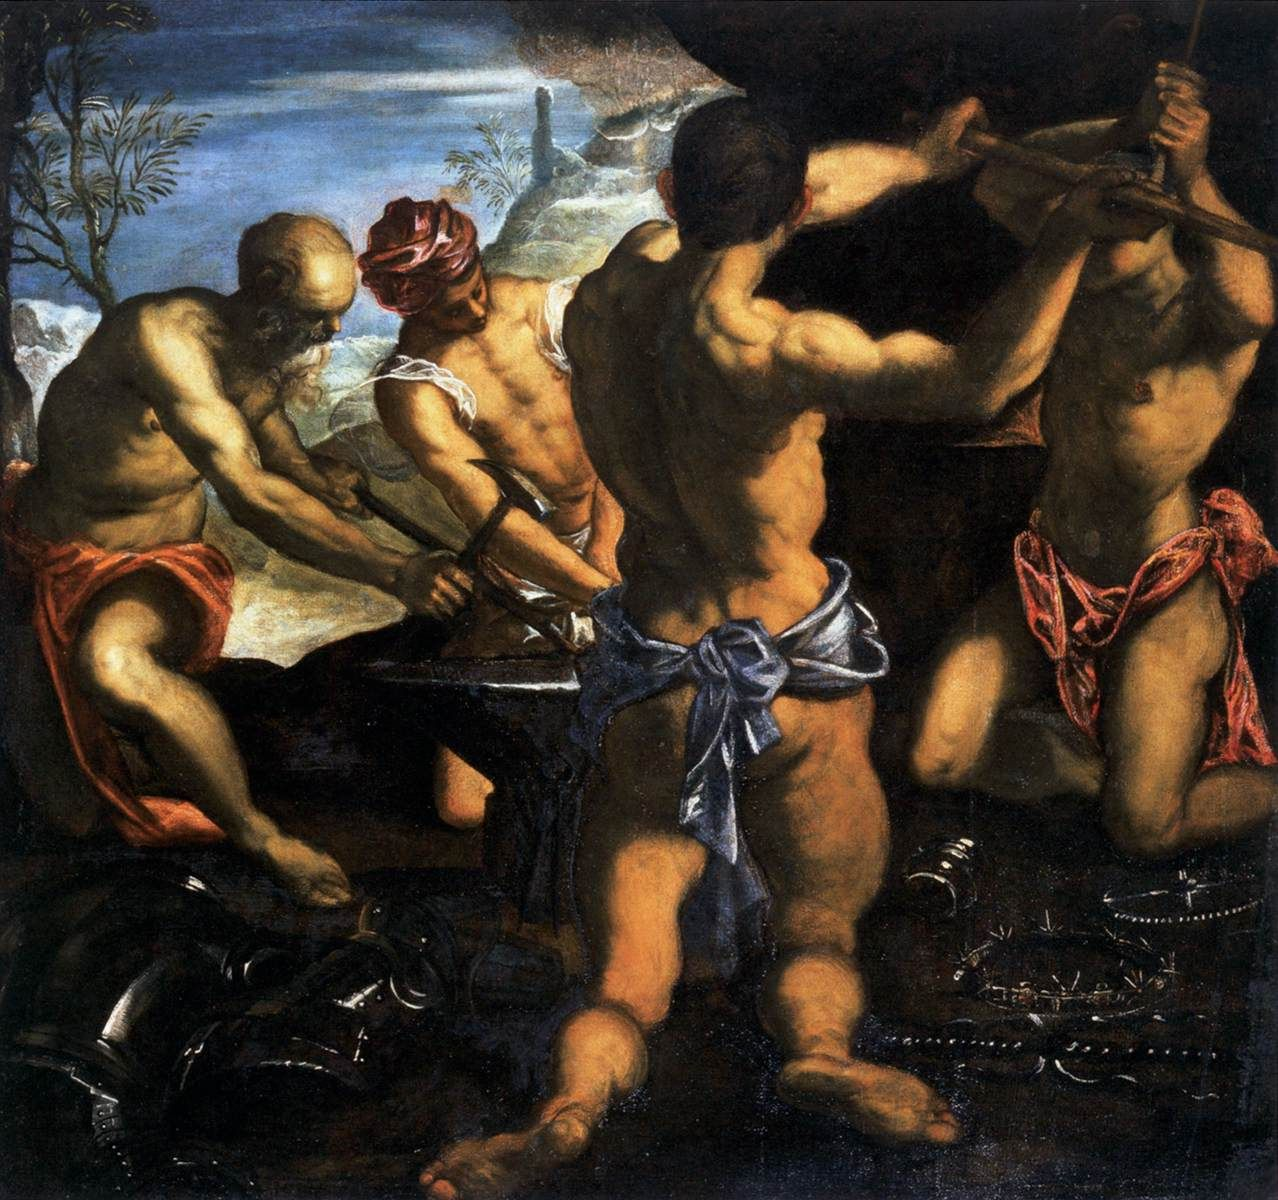 Palazzo-Ducale-Sala-di-Anticollegio-Vulcans-Forge-Tintoretto-Oil-Painting.jpg